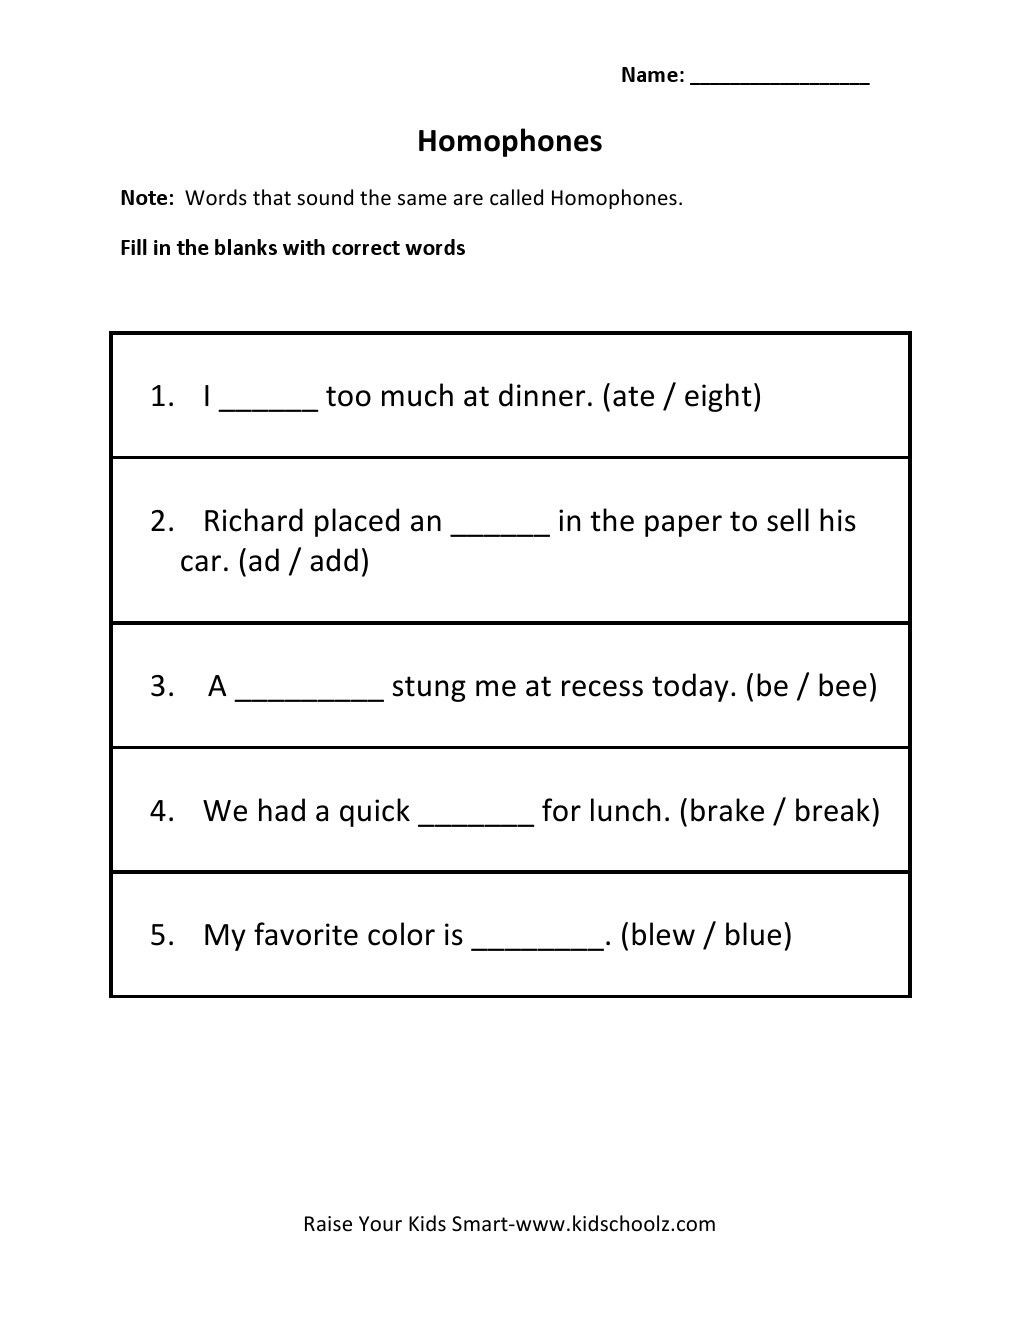 Homophones Worksheet 5th Grade Wp Content 2014 09 Homophones 1